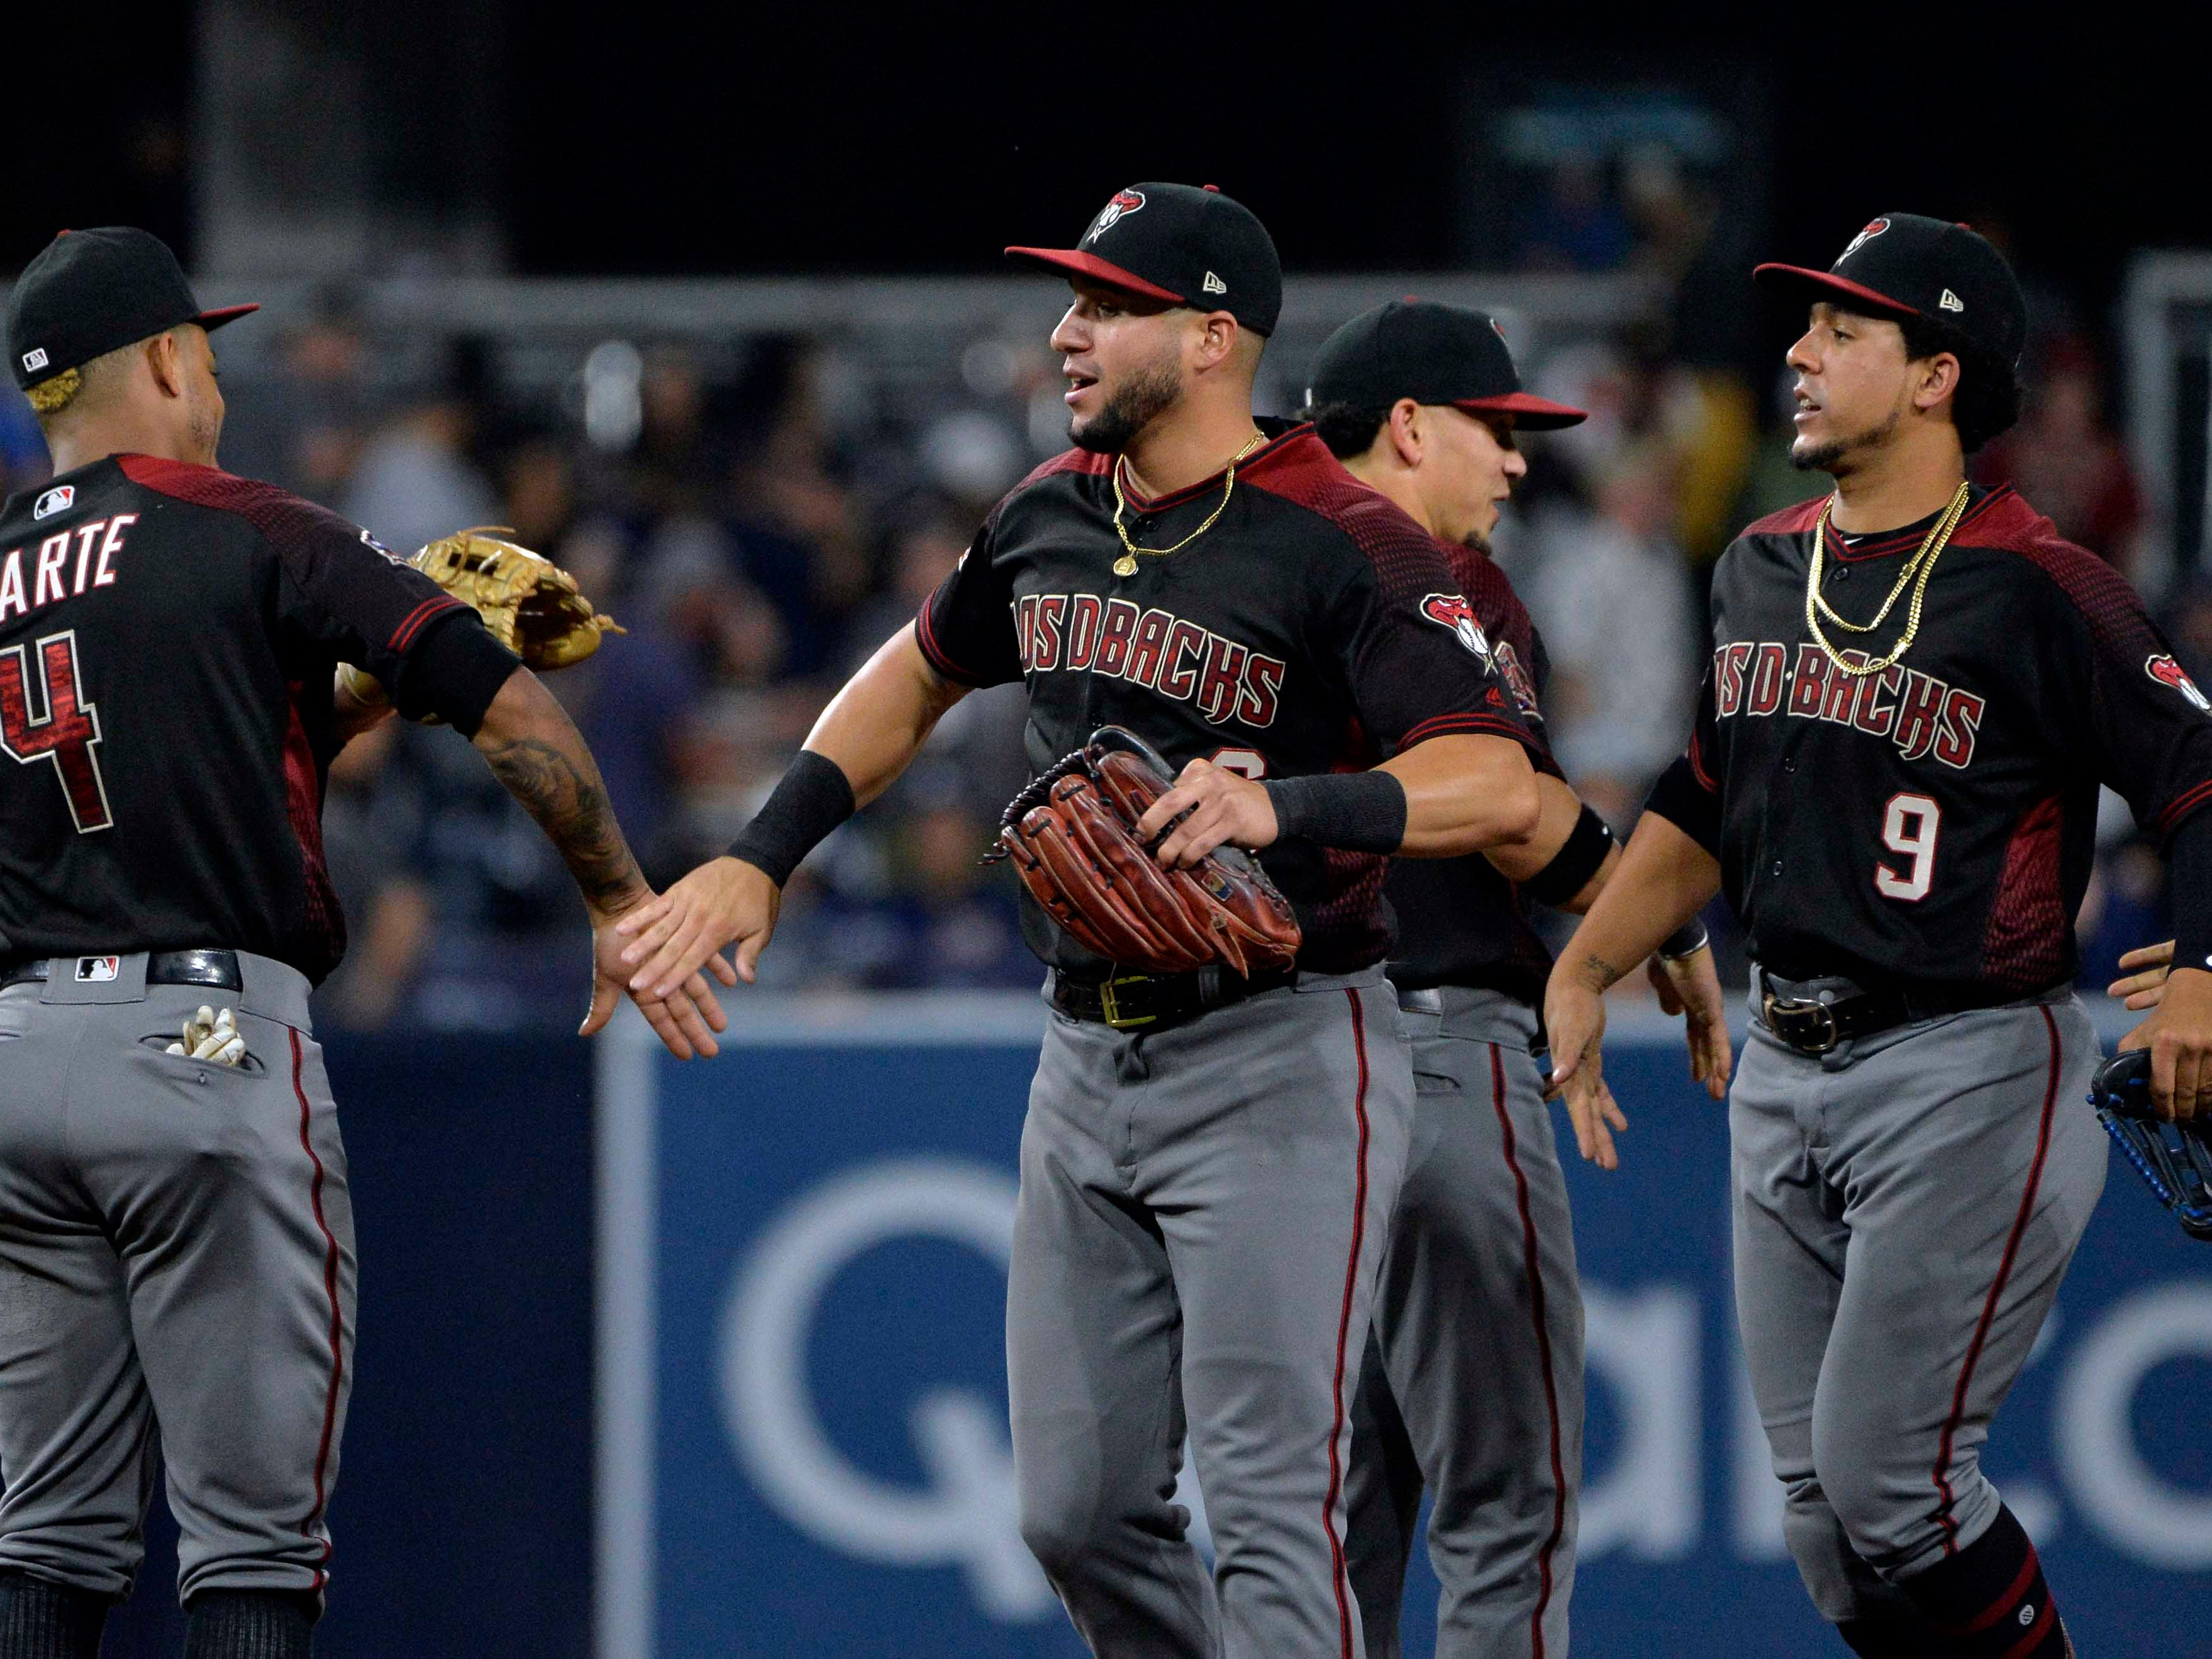 Sep 29, 2018; San Diego, CA, USA; The Arizona Diamondbacks celebrate a 5-4 win over the San Diego Padres at Petco Park. Mandatory Credit: Jake Roth-USA TODAY Sports